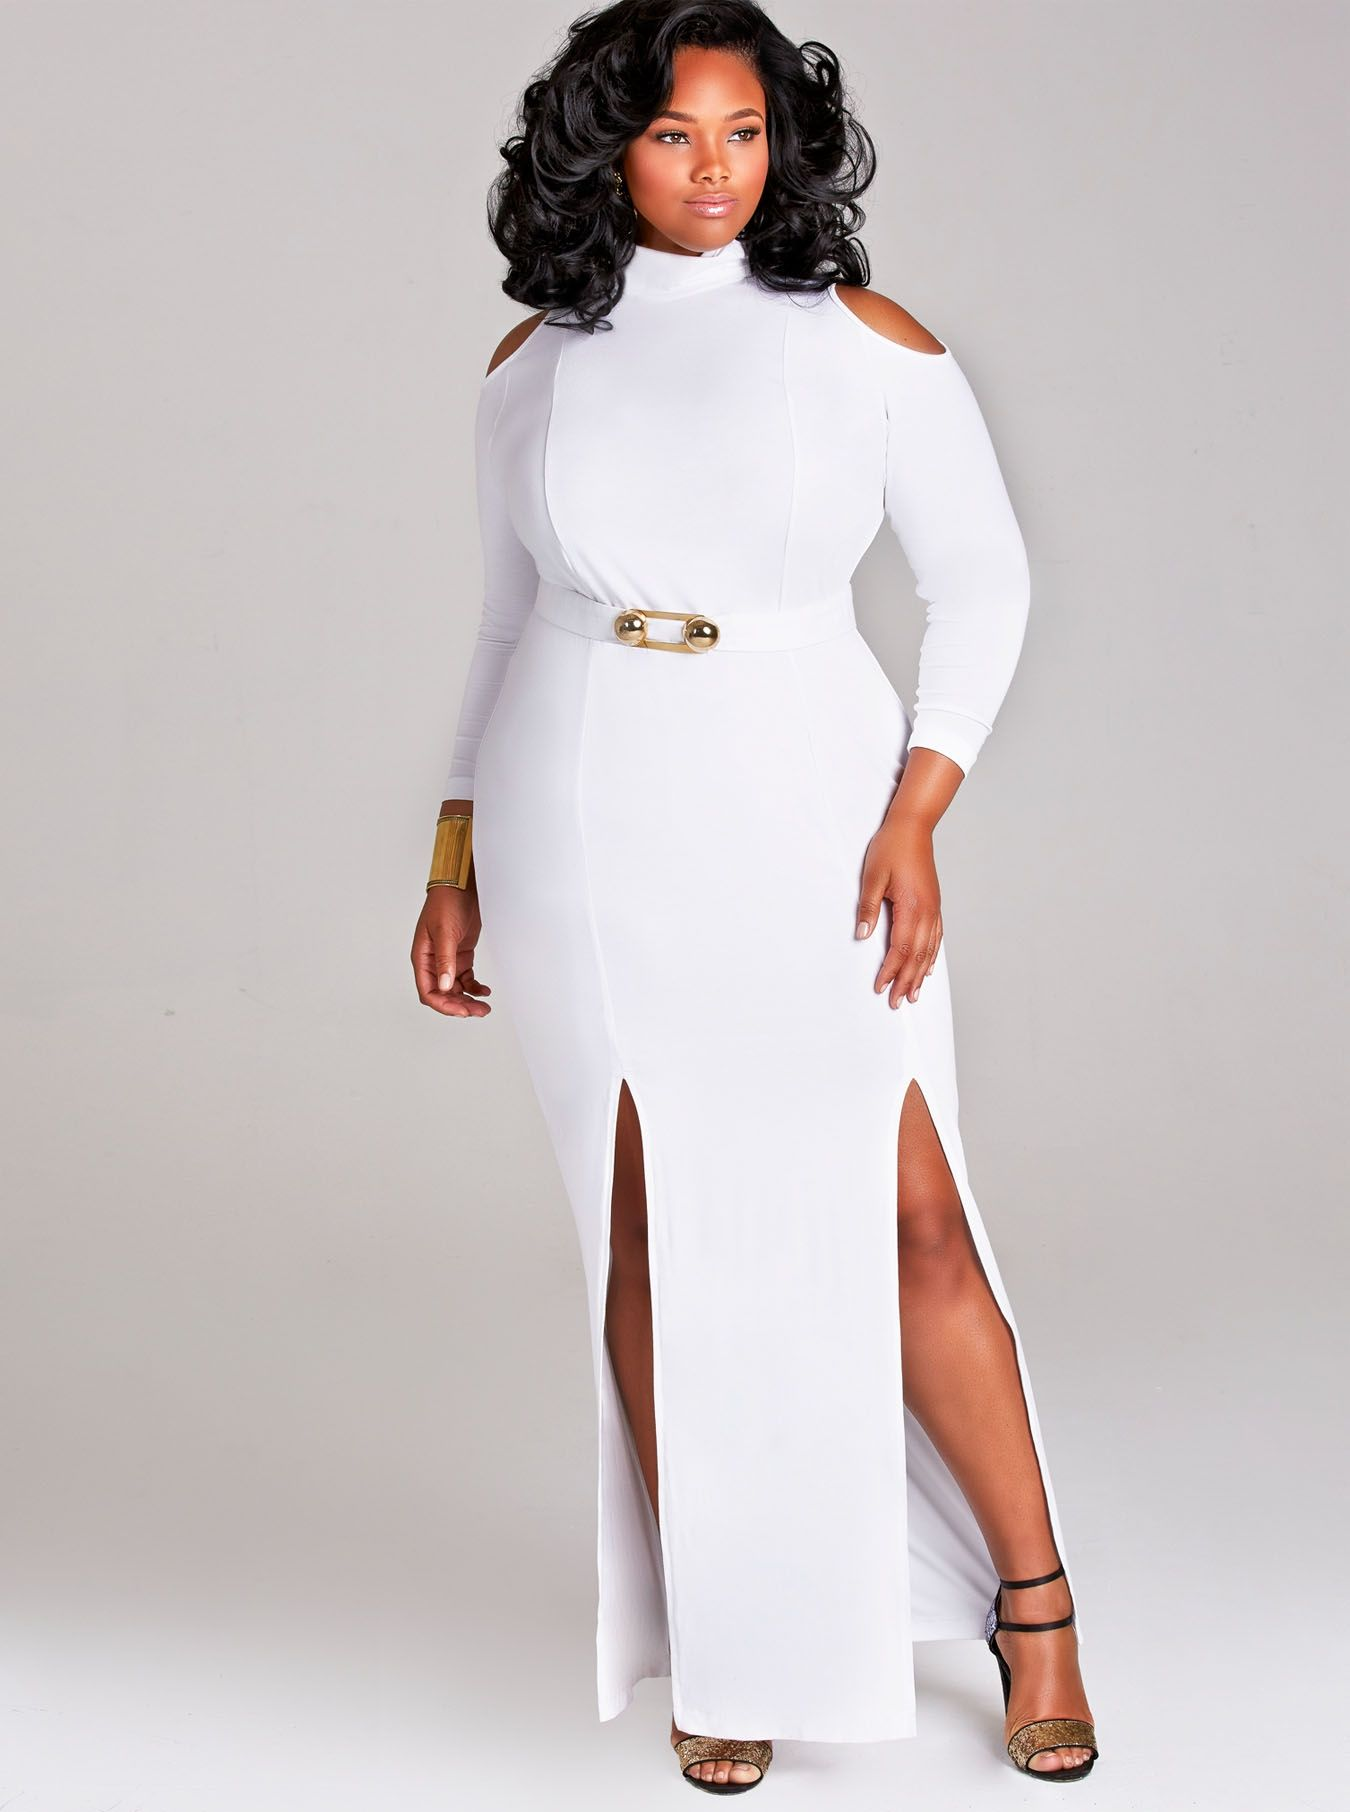 Emejing All White Dress For Plus Size Gallery - Mikejaninesmith.us ...